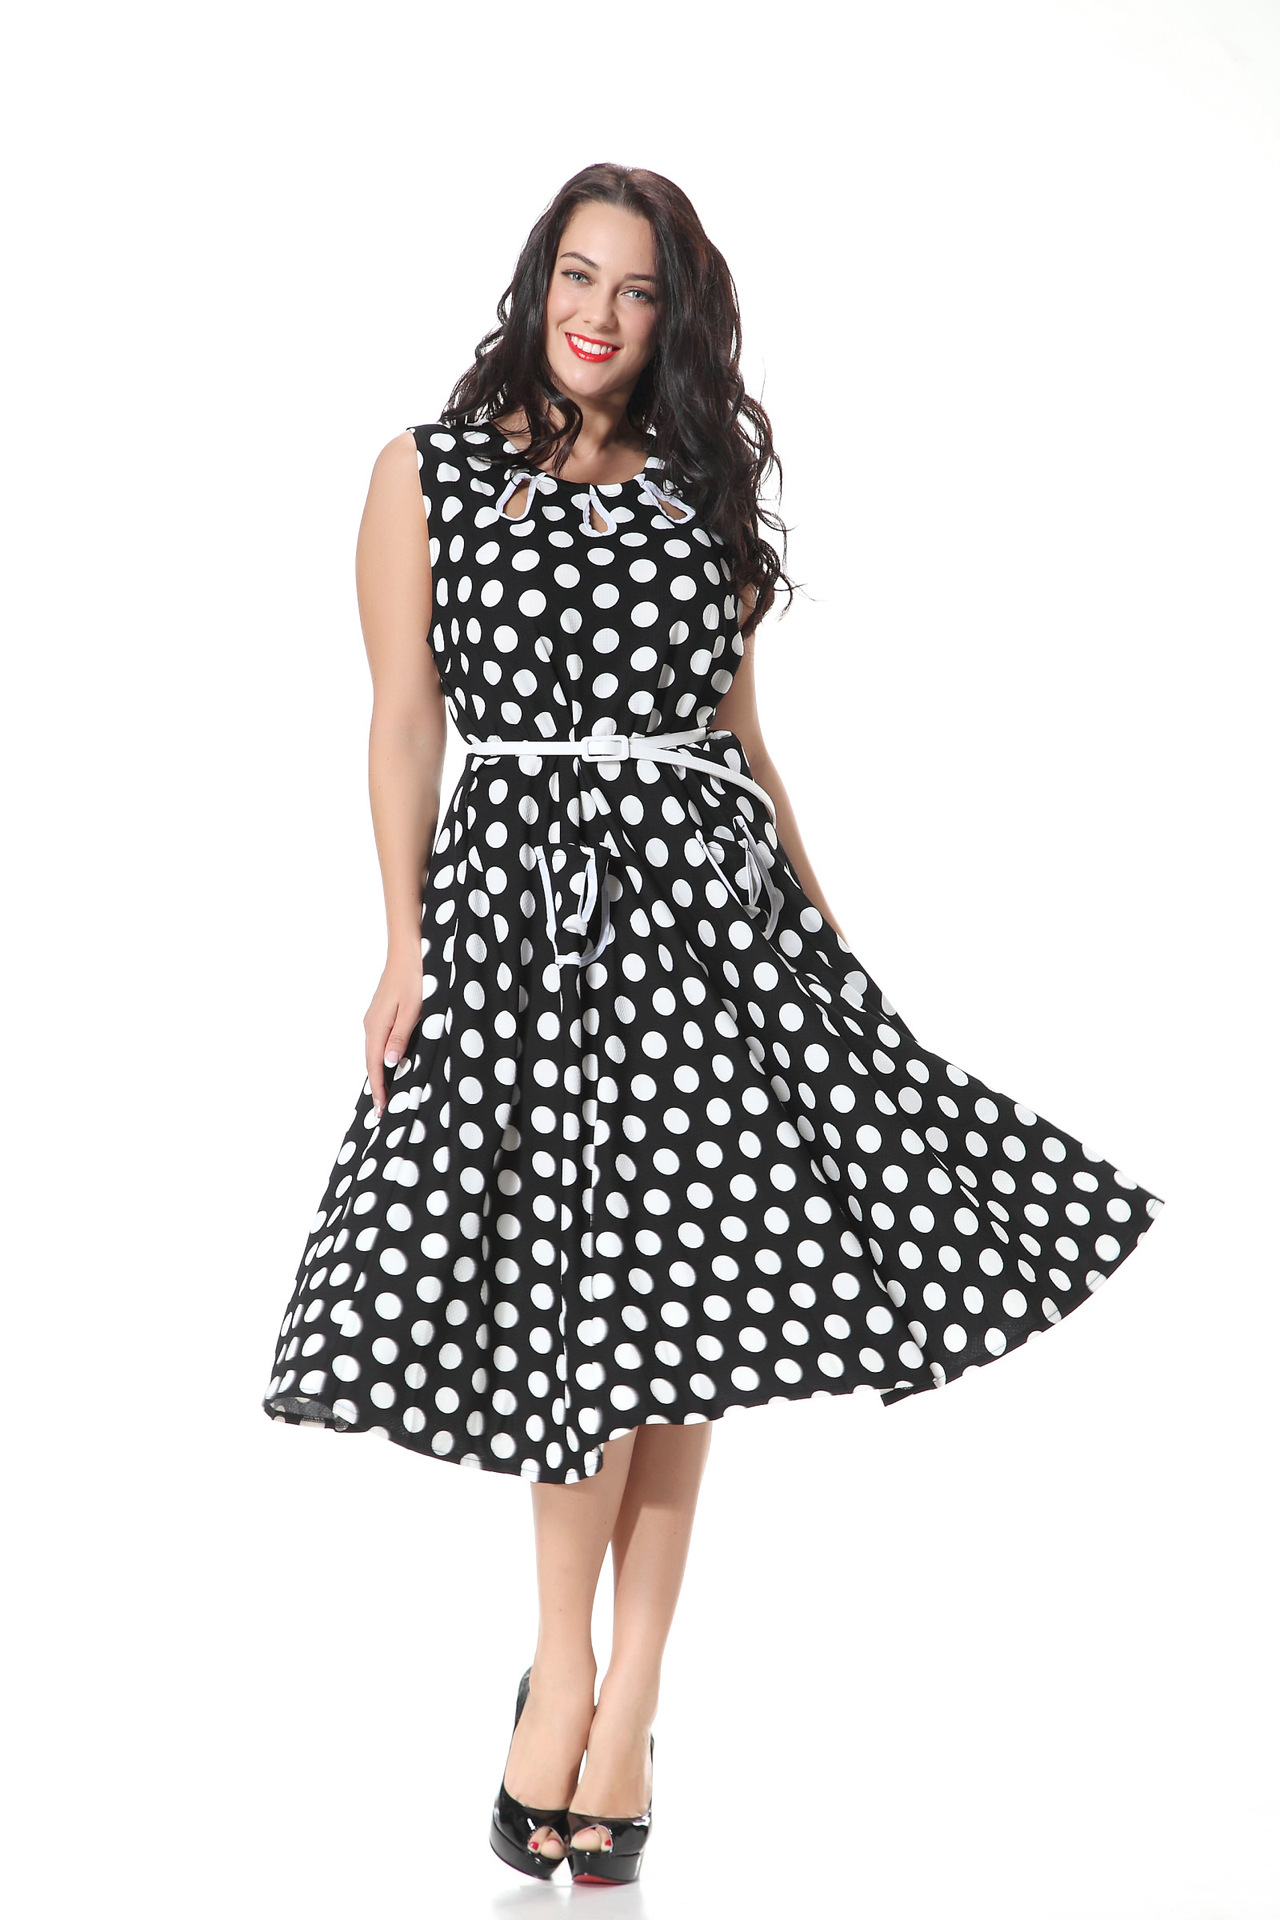 dffbf3b9fae08 New Look Maternity Occasion Dresses